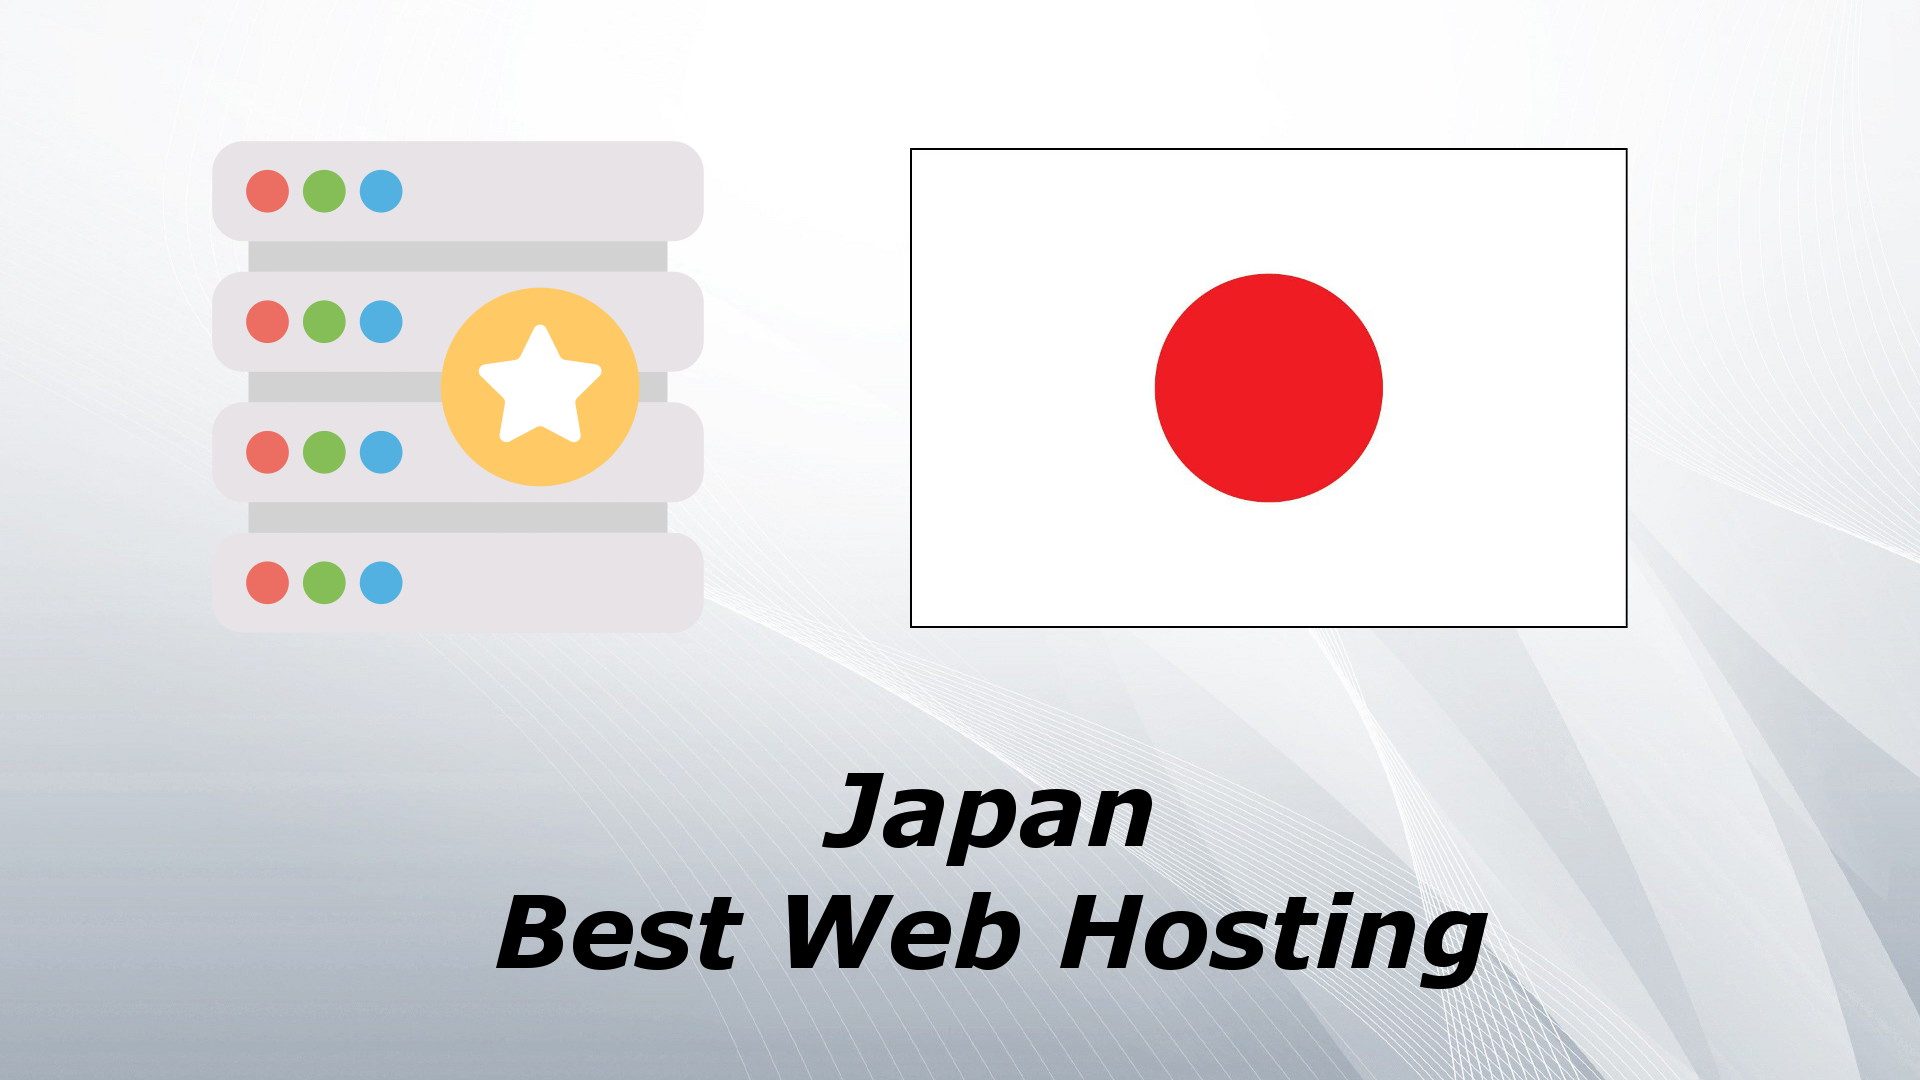 Japan Best Web Hosting